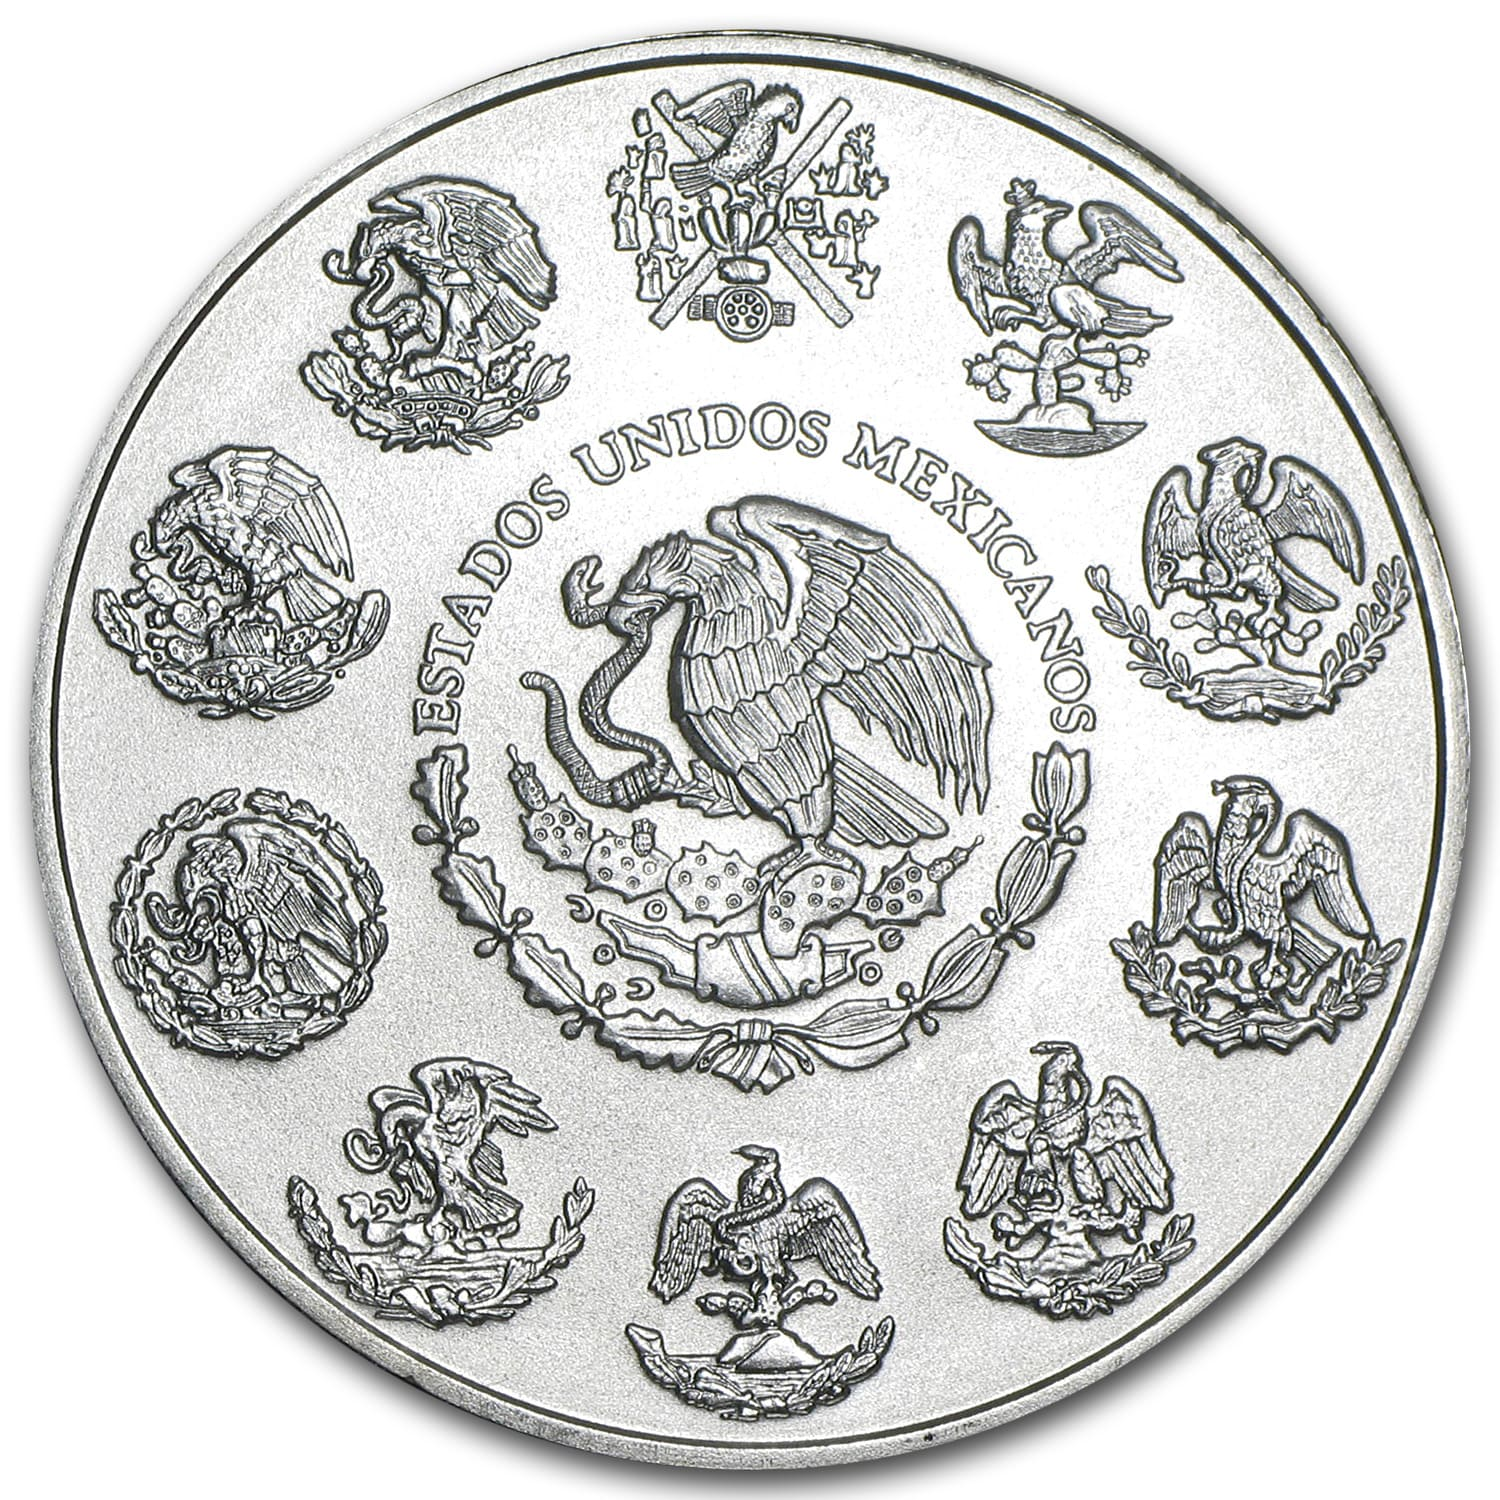 2013 1 oz Silver Mexican Libertad (Brilliant Uncirculated)